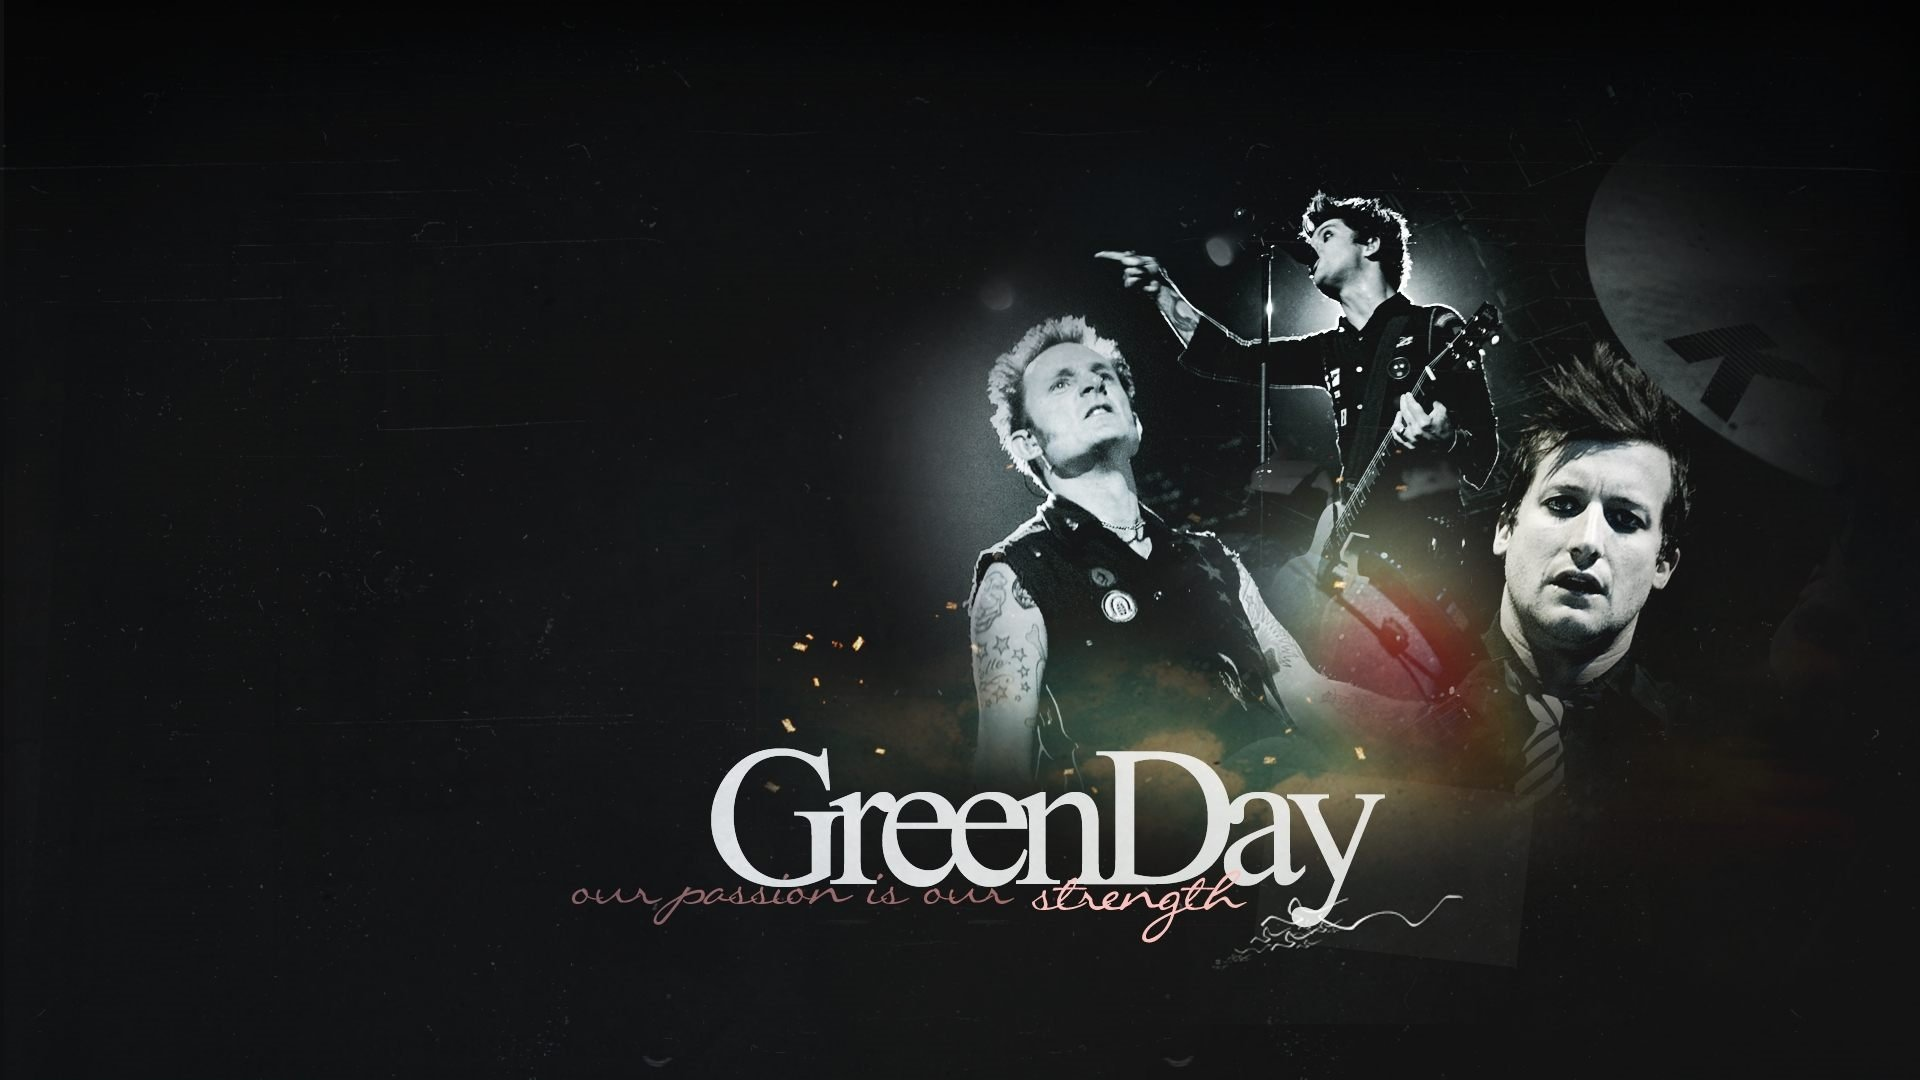 Green Day Wallpaper Free Download